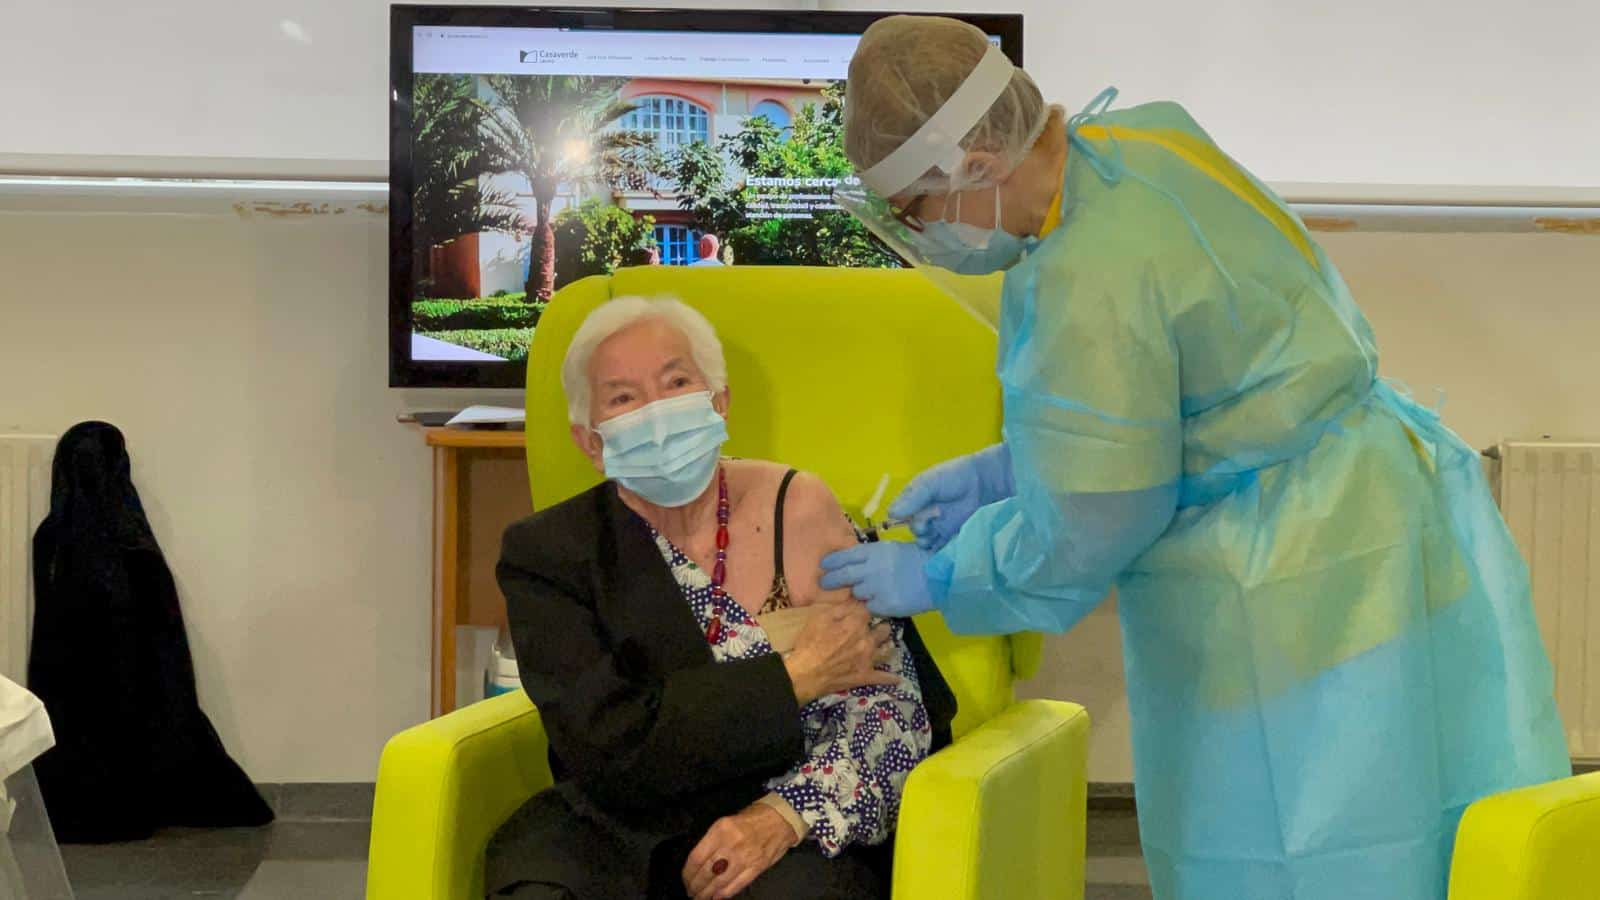 On Saturday morning, vaccinations got underway at the Casaverde Care Home,